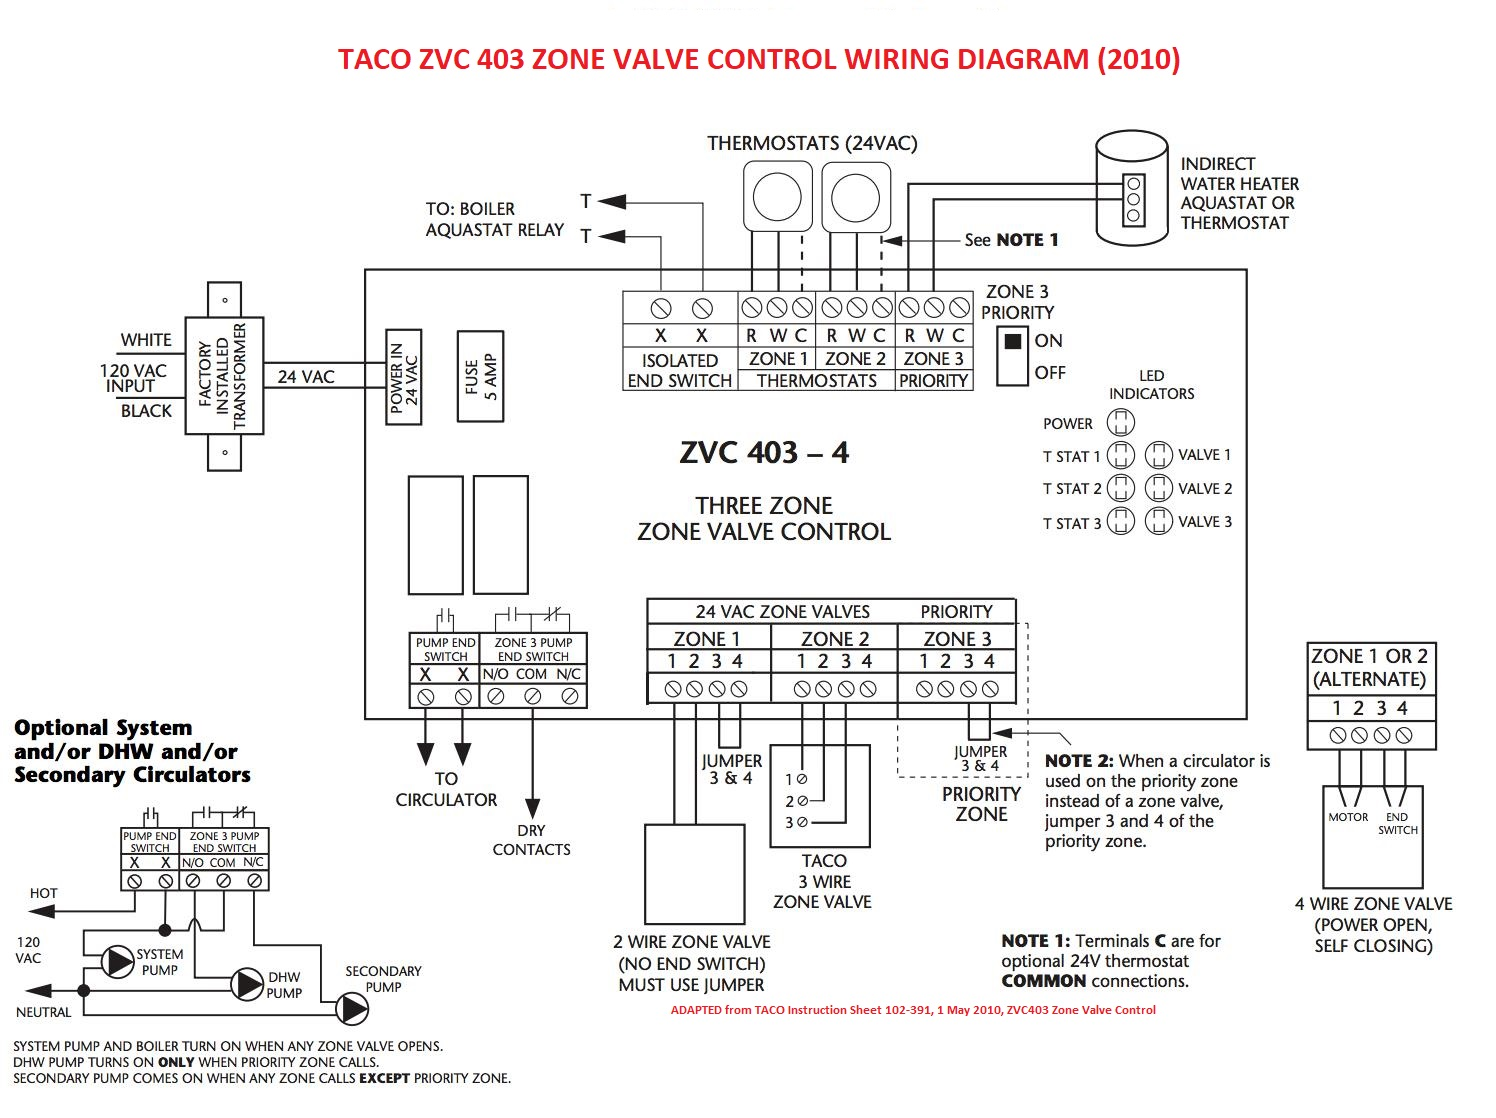 Waterfurnace Wiring Diagram Library Water Furnace Taci Zvc493 Click To Enlarge At Inspectapediacom